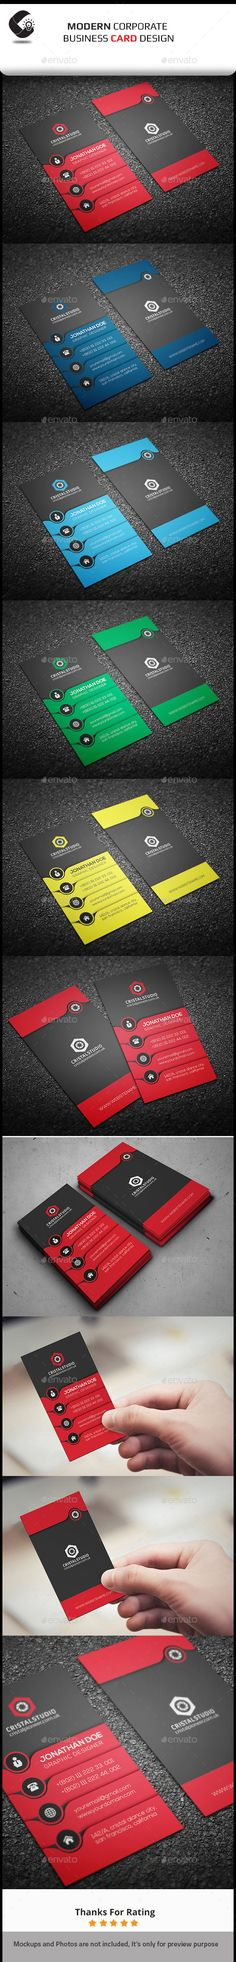 54 best supper creative business card images on pinterest business creative business card design verticalis very easy to use andchange textcolorsize reheart Gallery